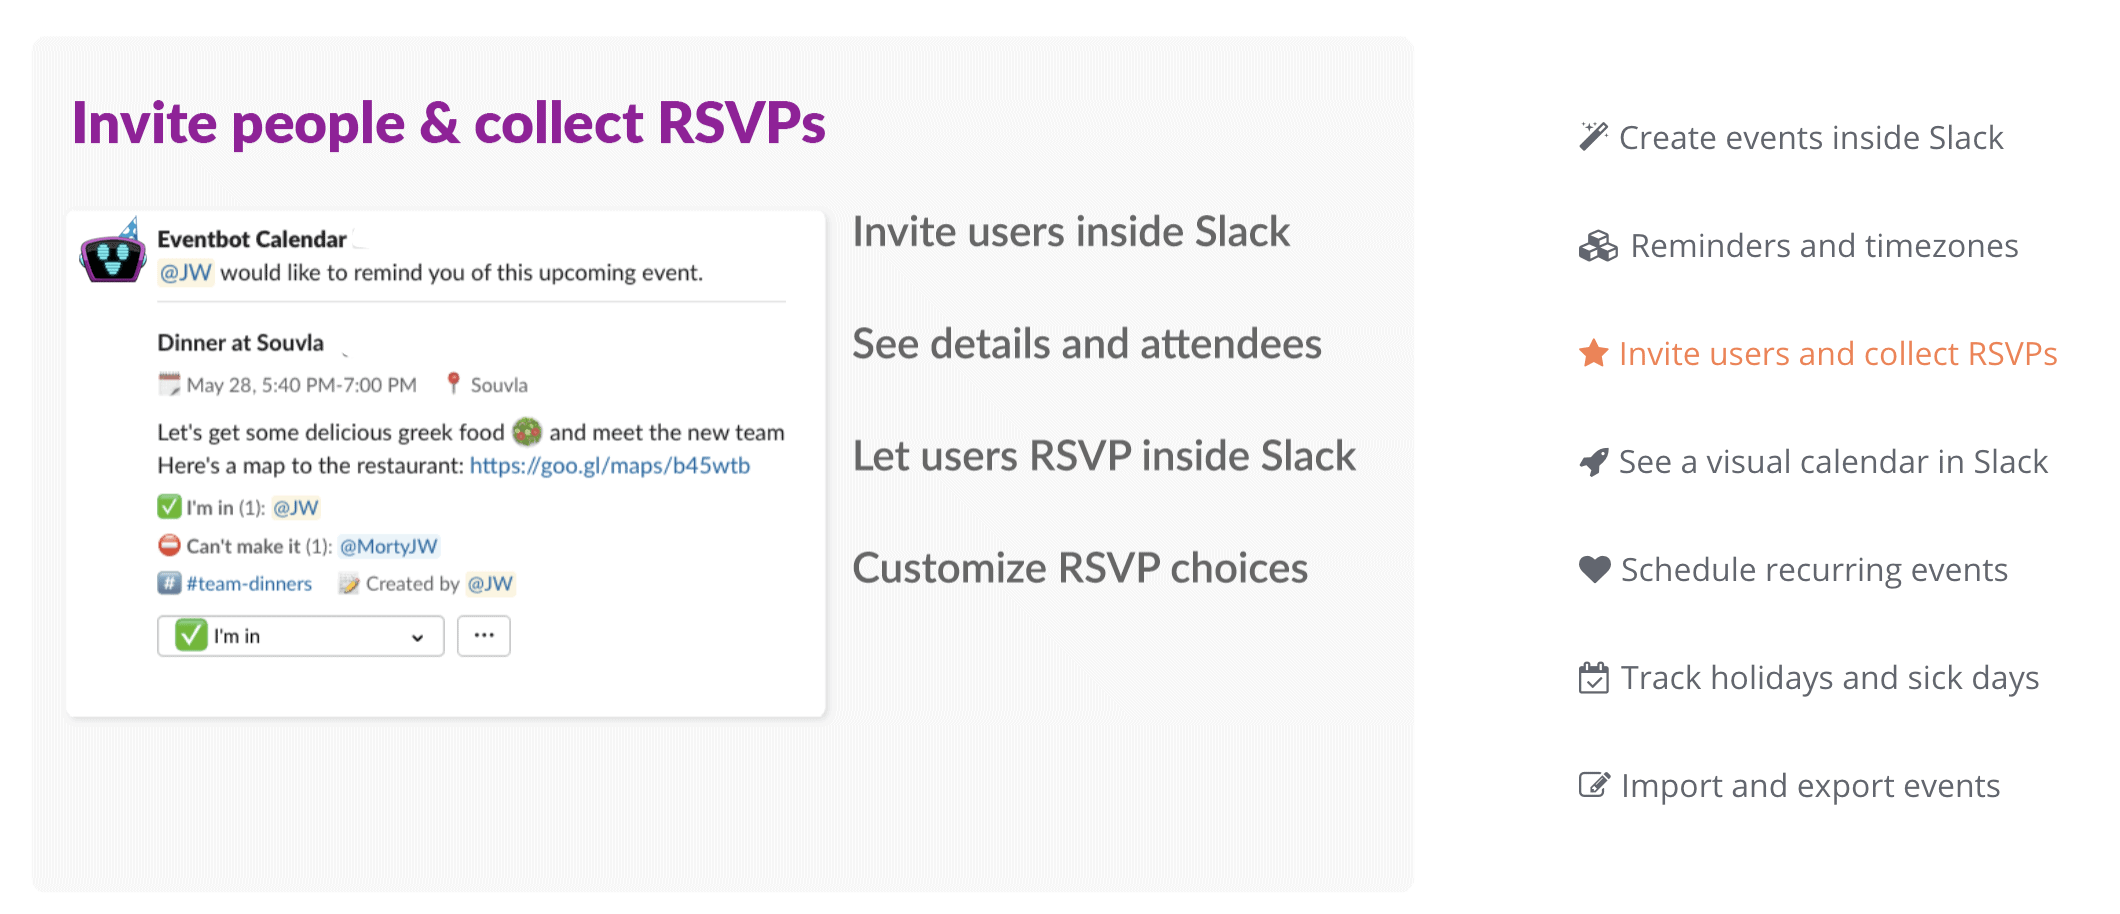 Eventbot Features